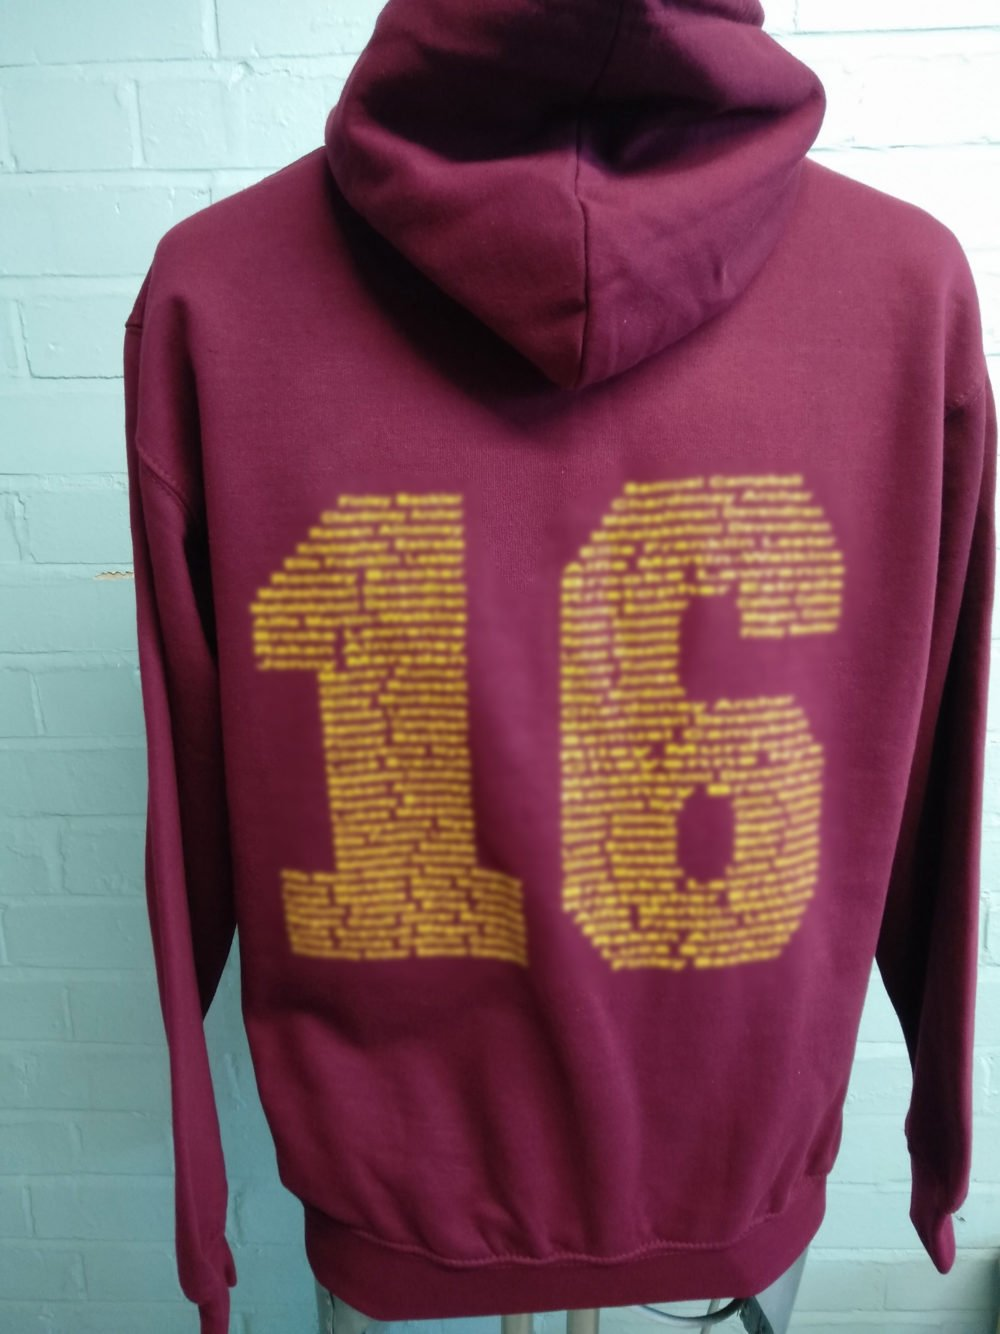 St Marks Class of 16 Leavers Hoodies